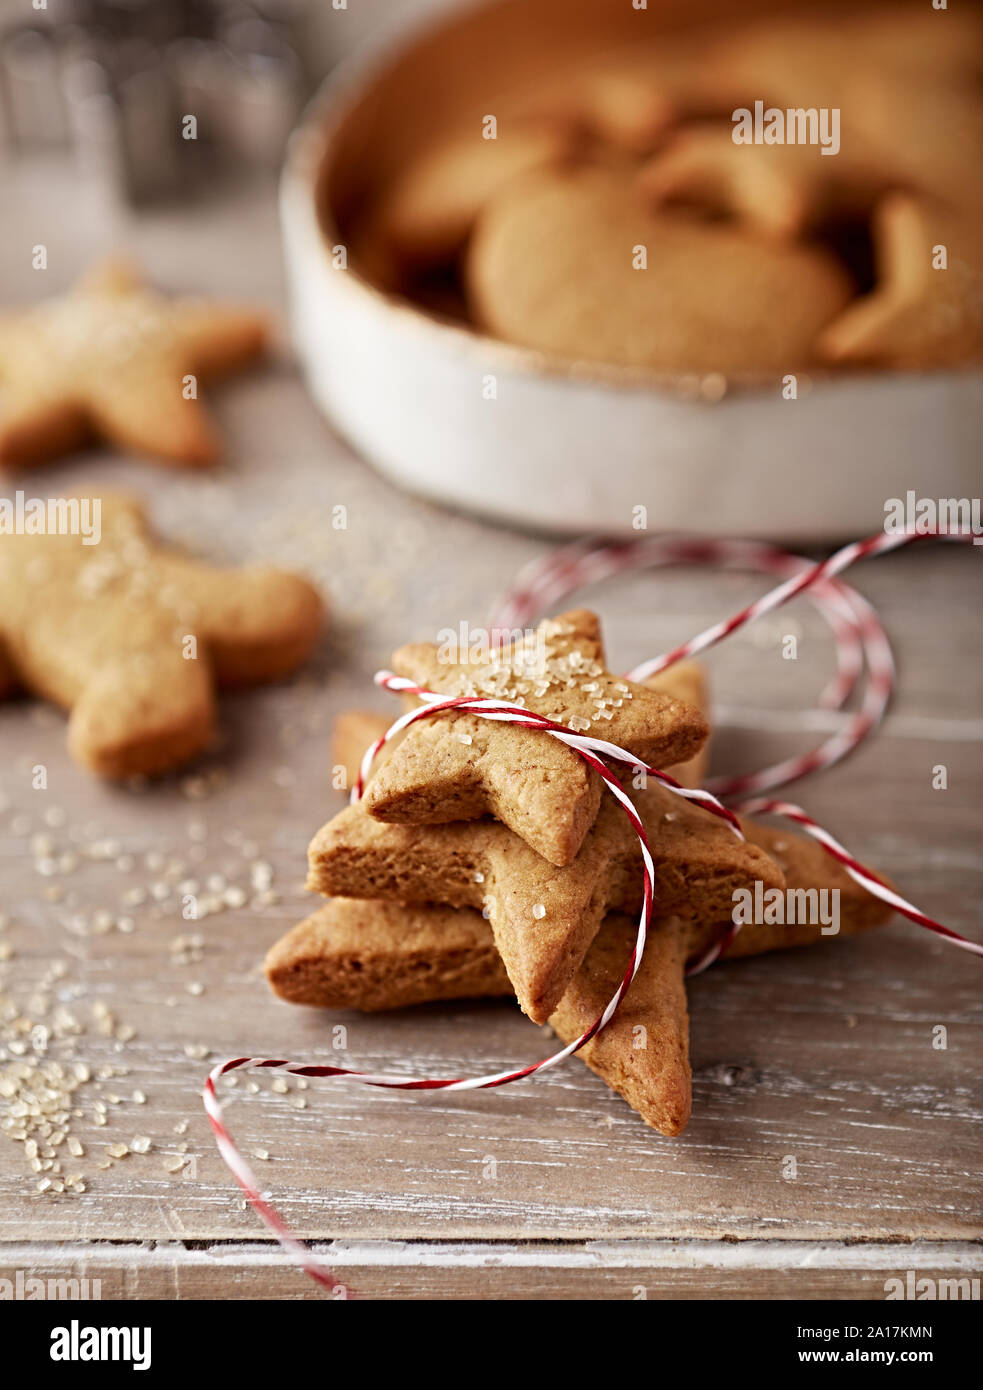 Gingerbread Cookies To Give As A Gift Homemade Christmas Cookies Close Up Stock Photo Alamy